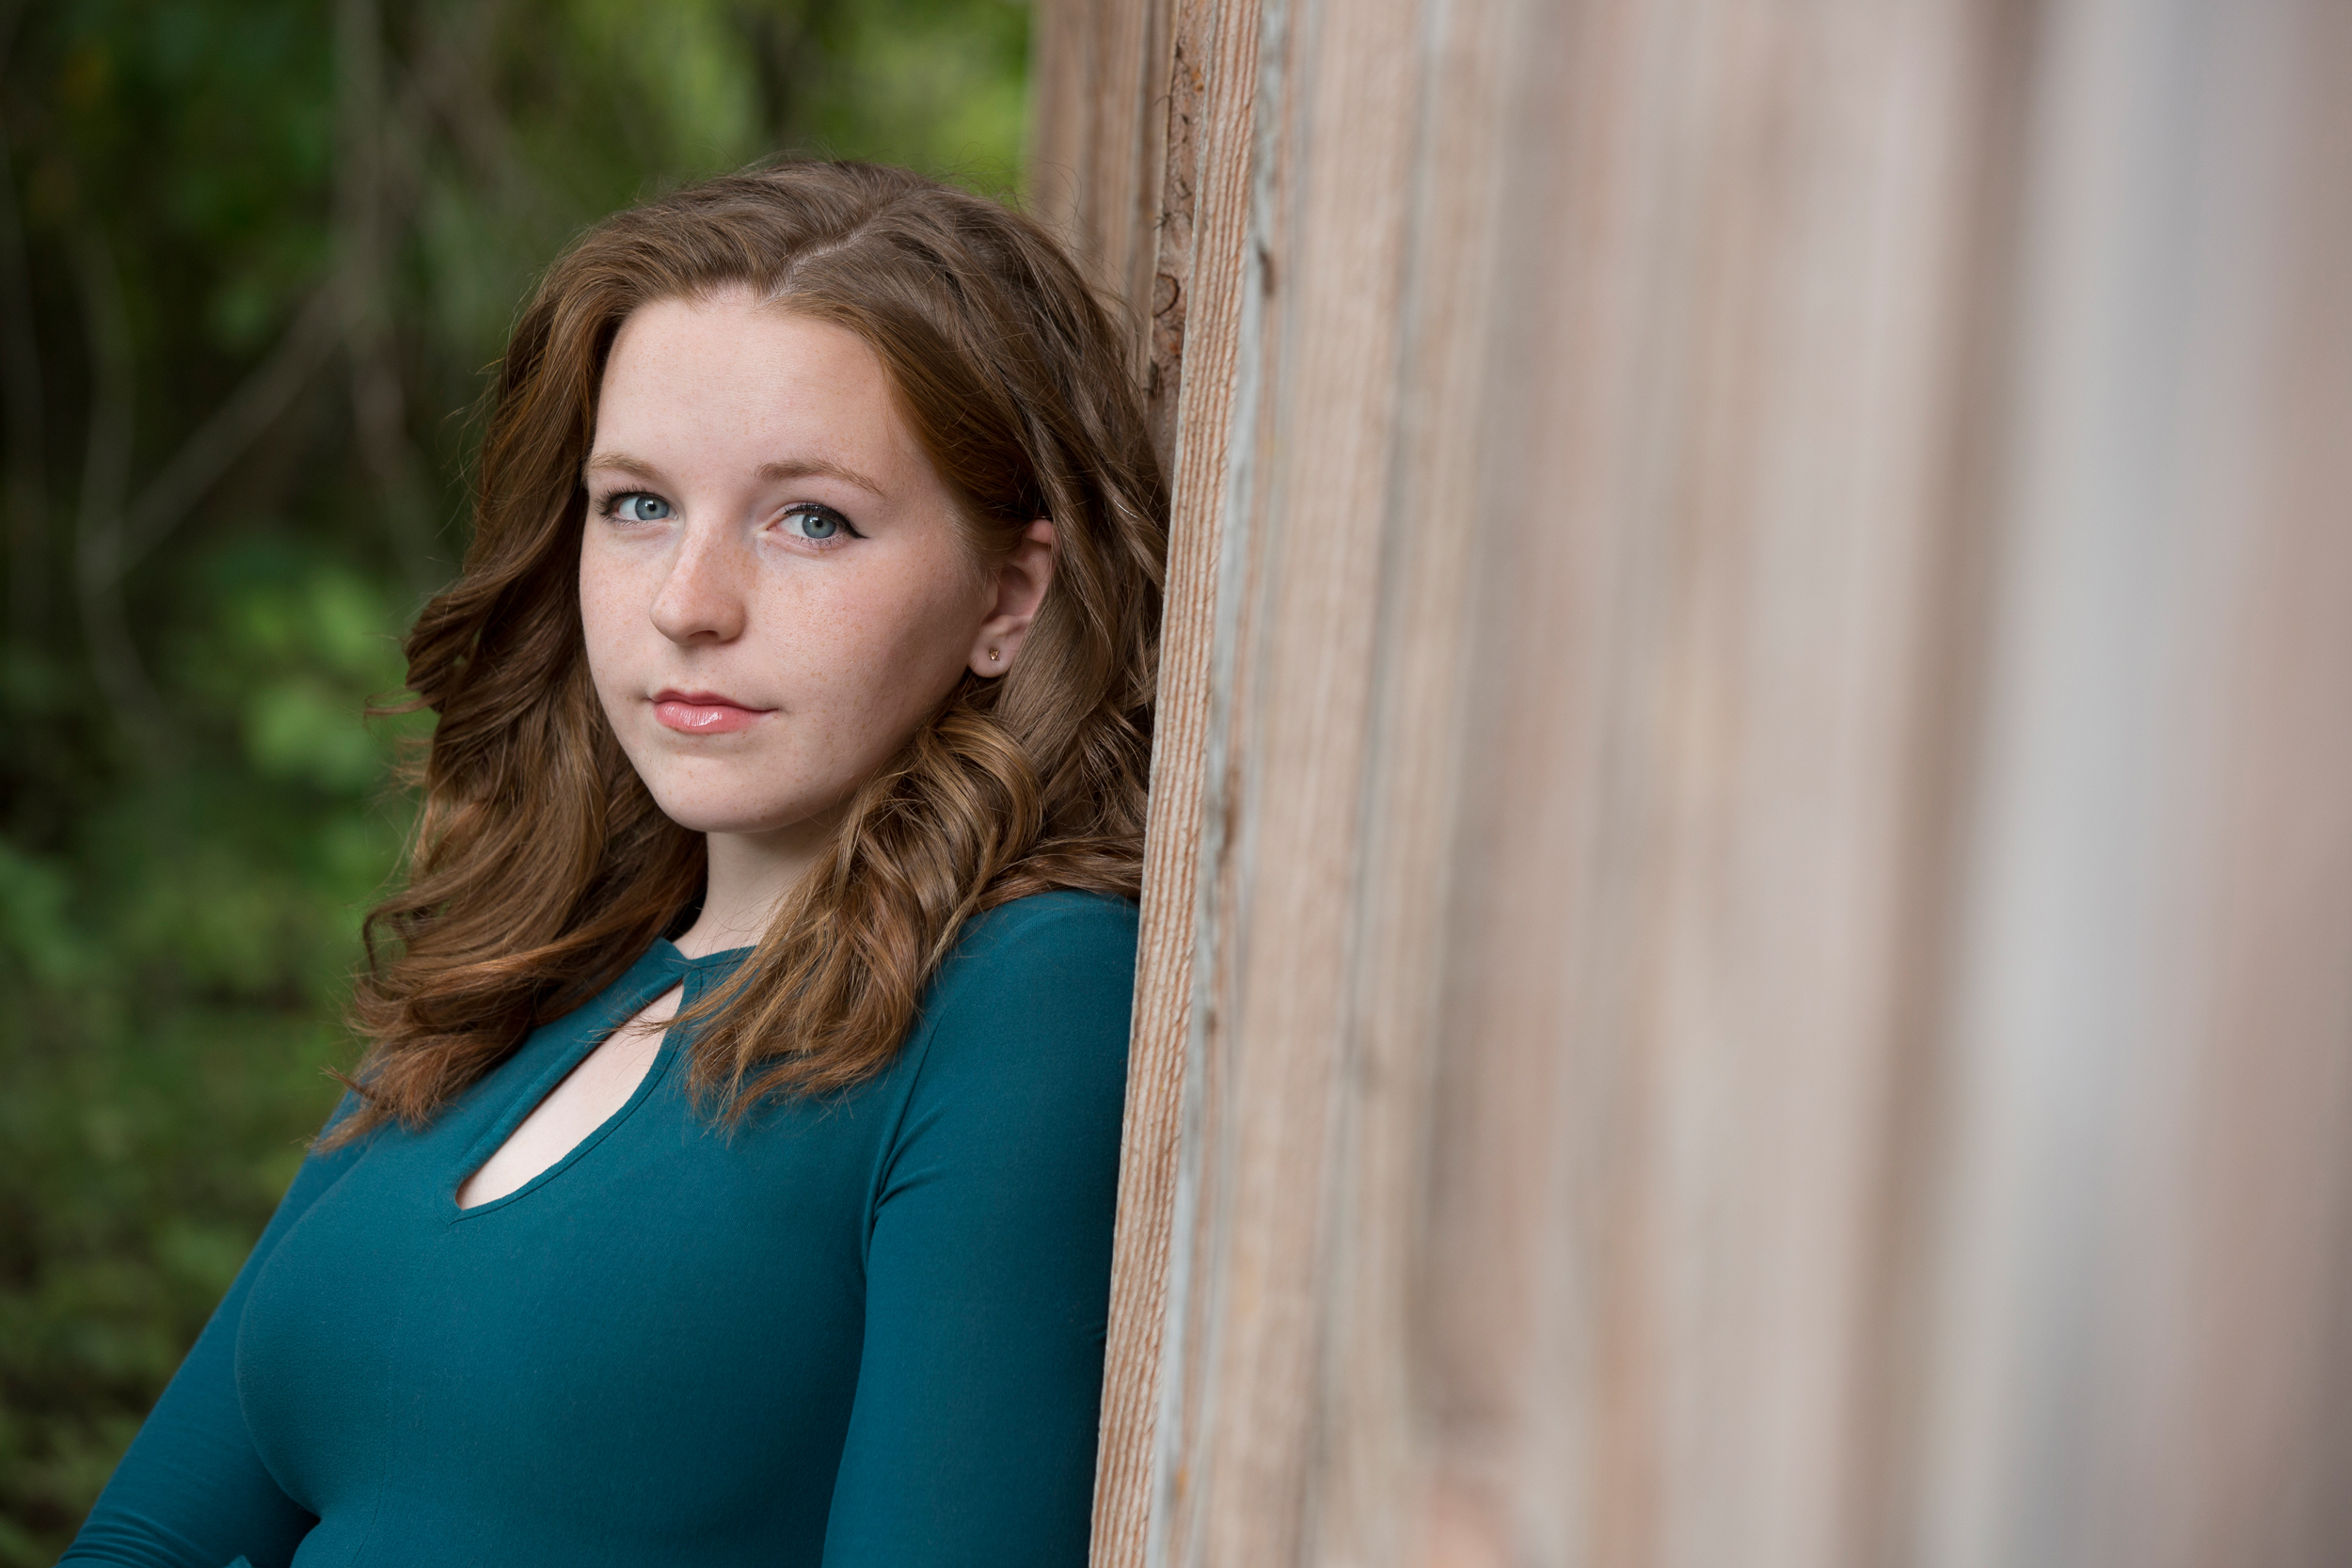 senior-portrait-photography-11.jpg